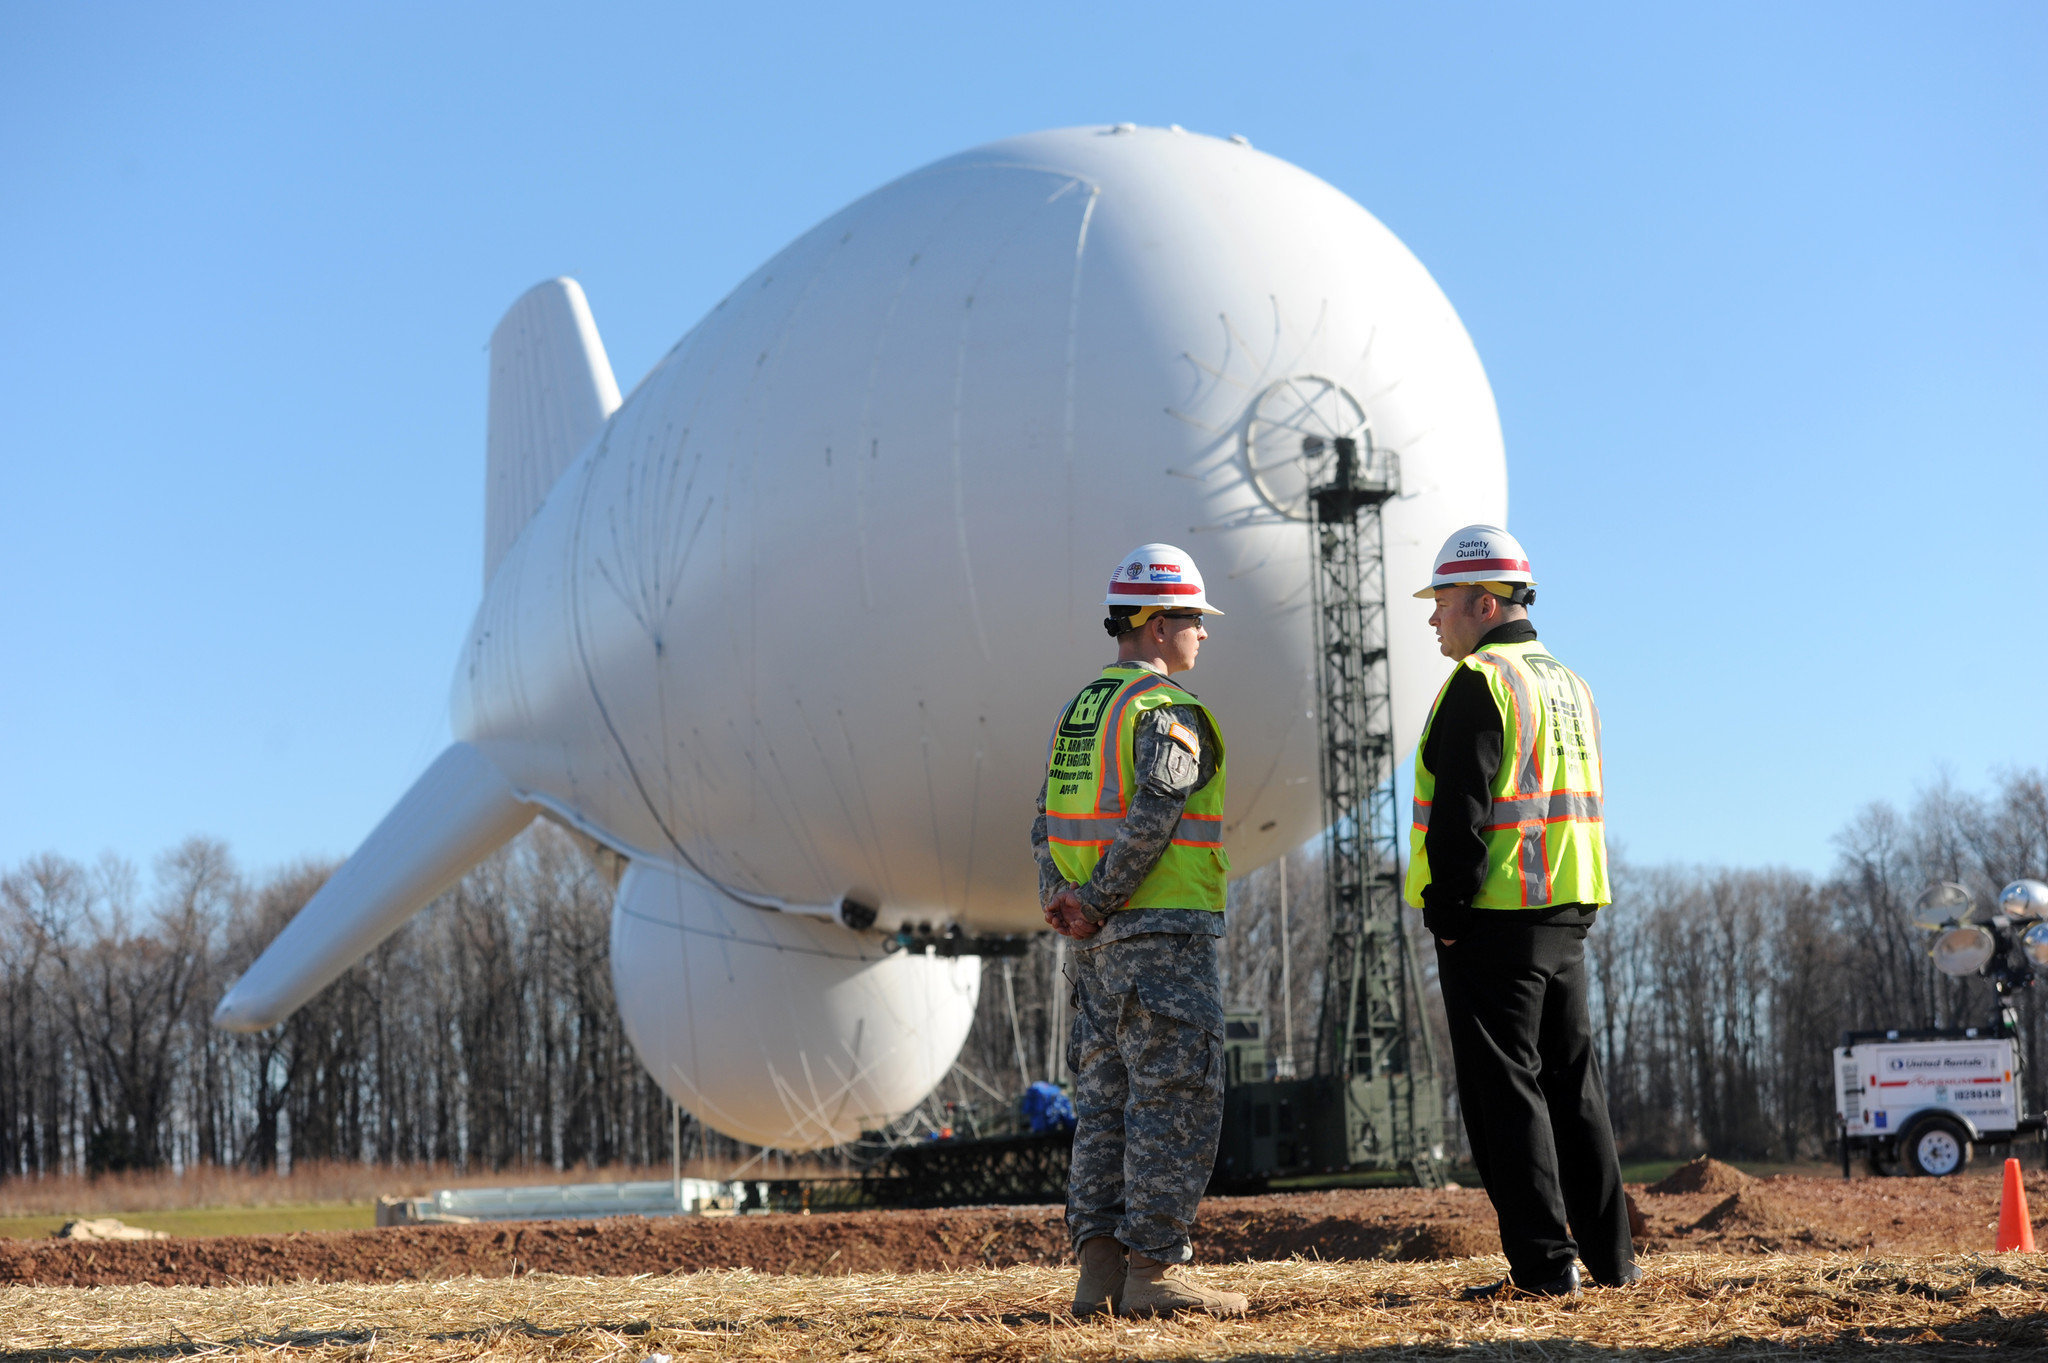 Blimp A Reminder Of Aberdeen Proving Ground Editorial